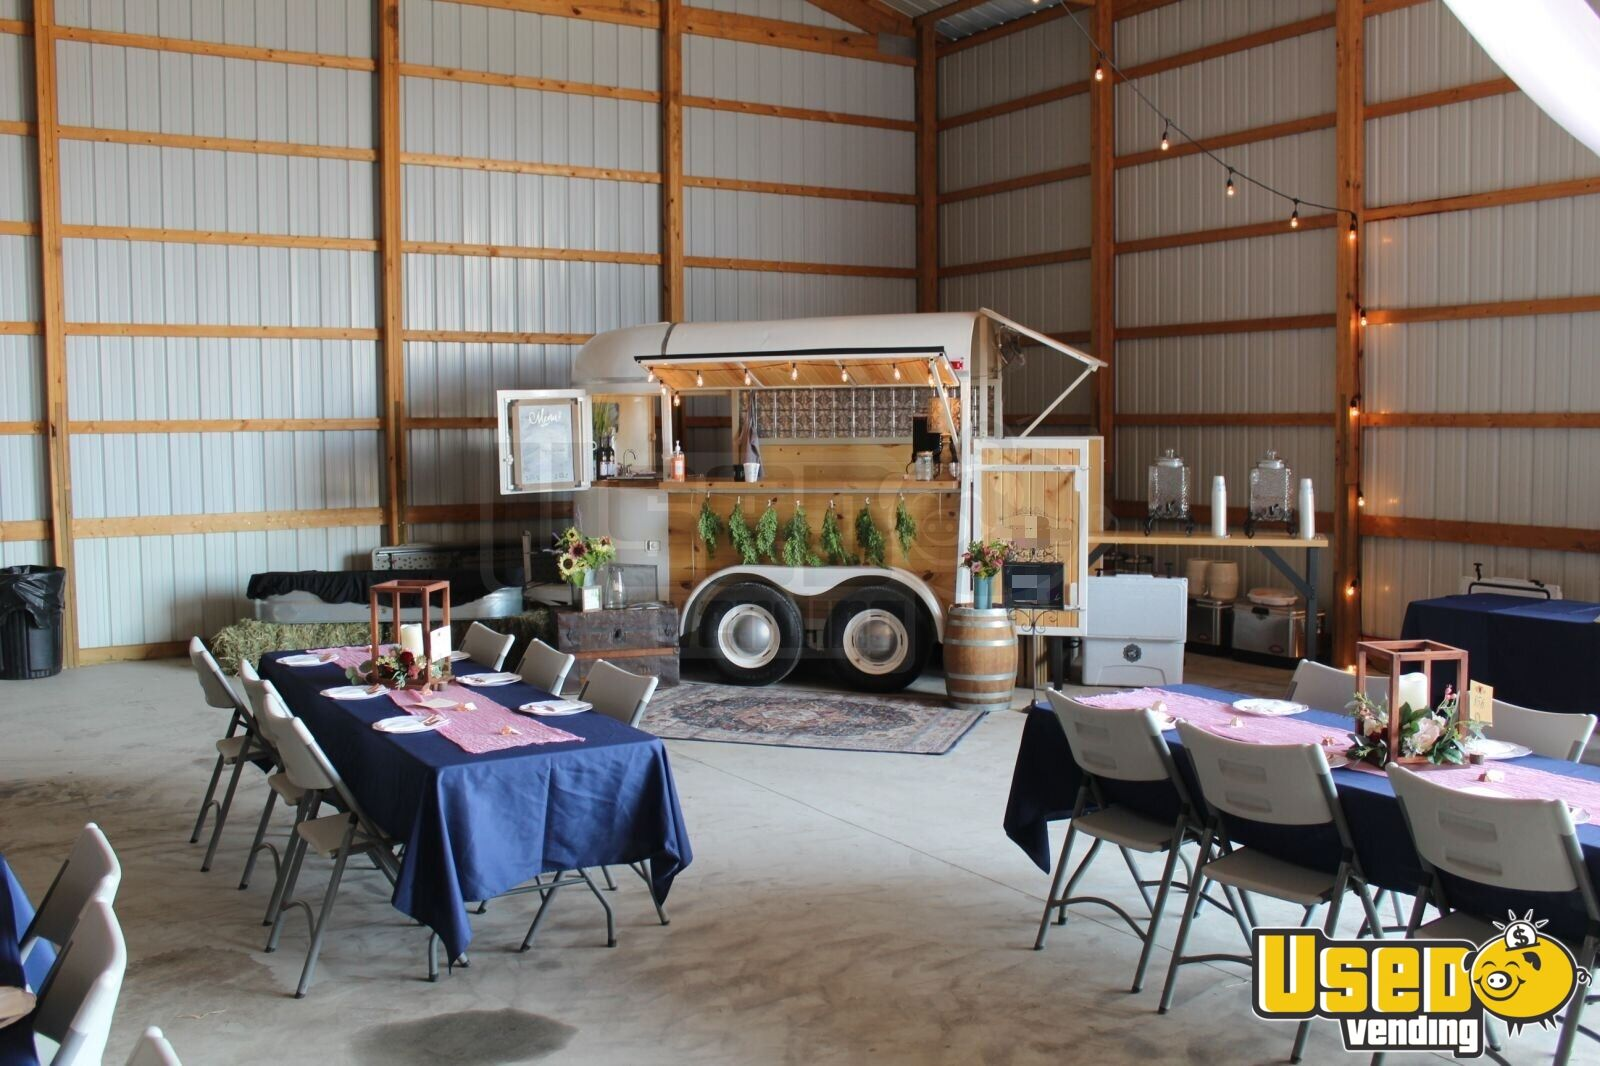 1972 Vintage Horse Trailer Mobile Wine Bar Beverage Bar Conversion For Sale In Michigan